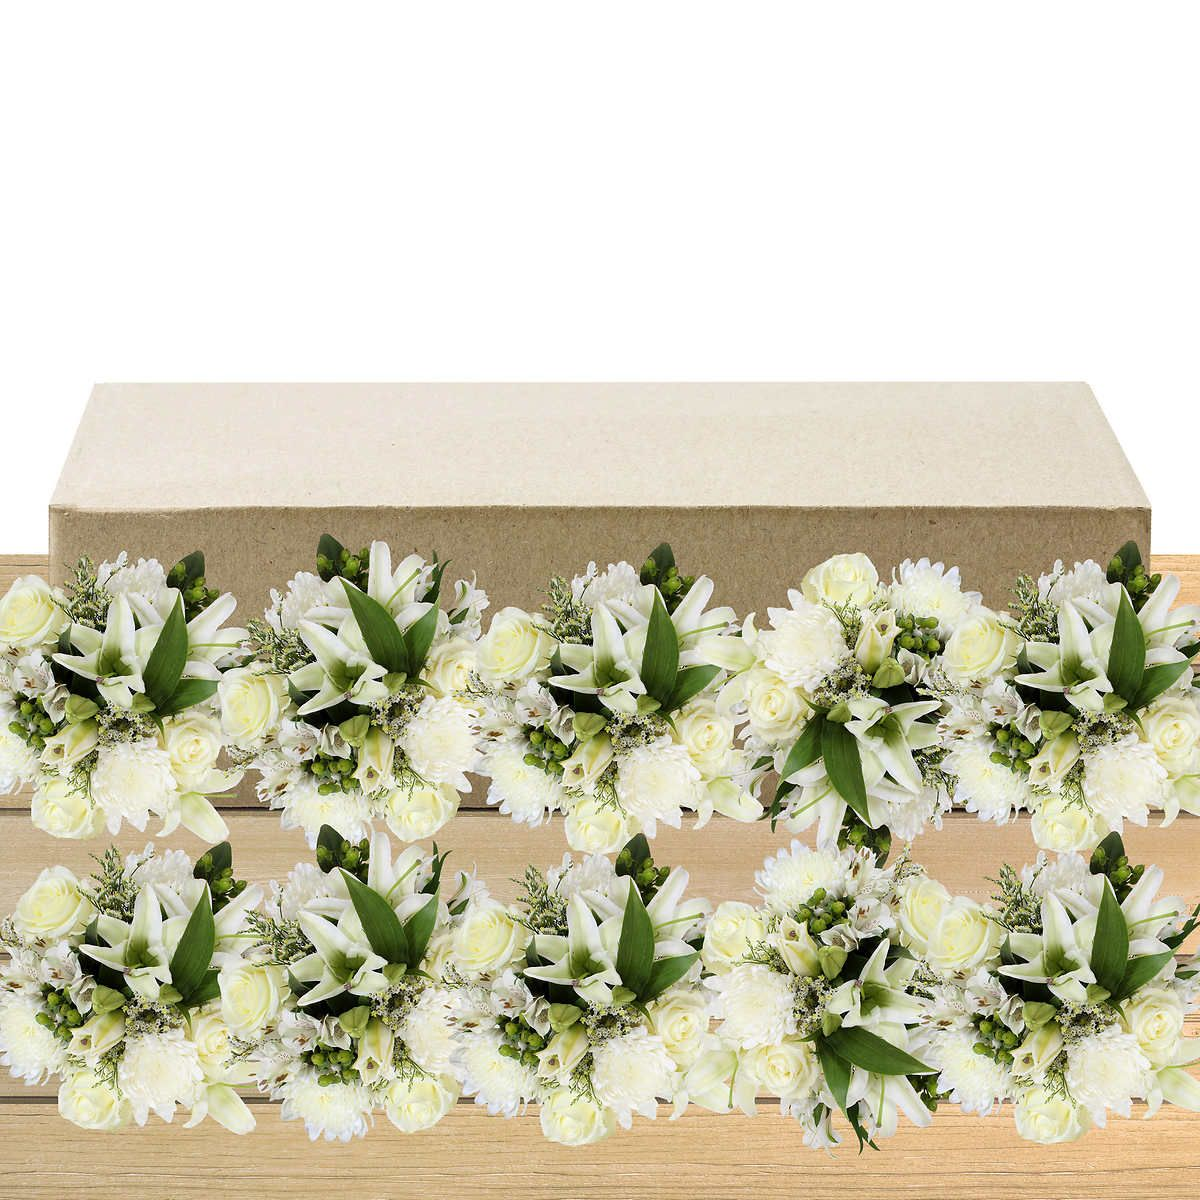 Wedding Flowers Packages From Costco: 10-count Mountain Bouquets In 2020